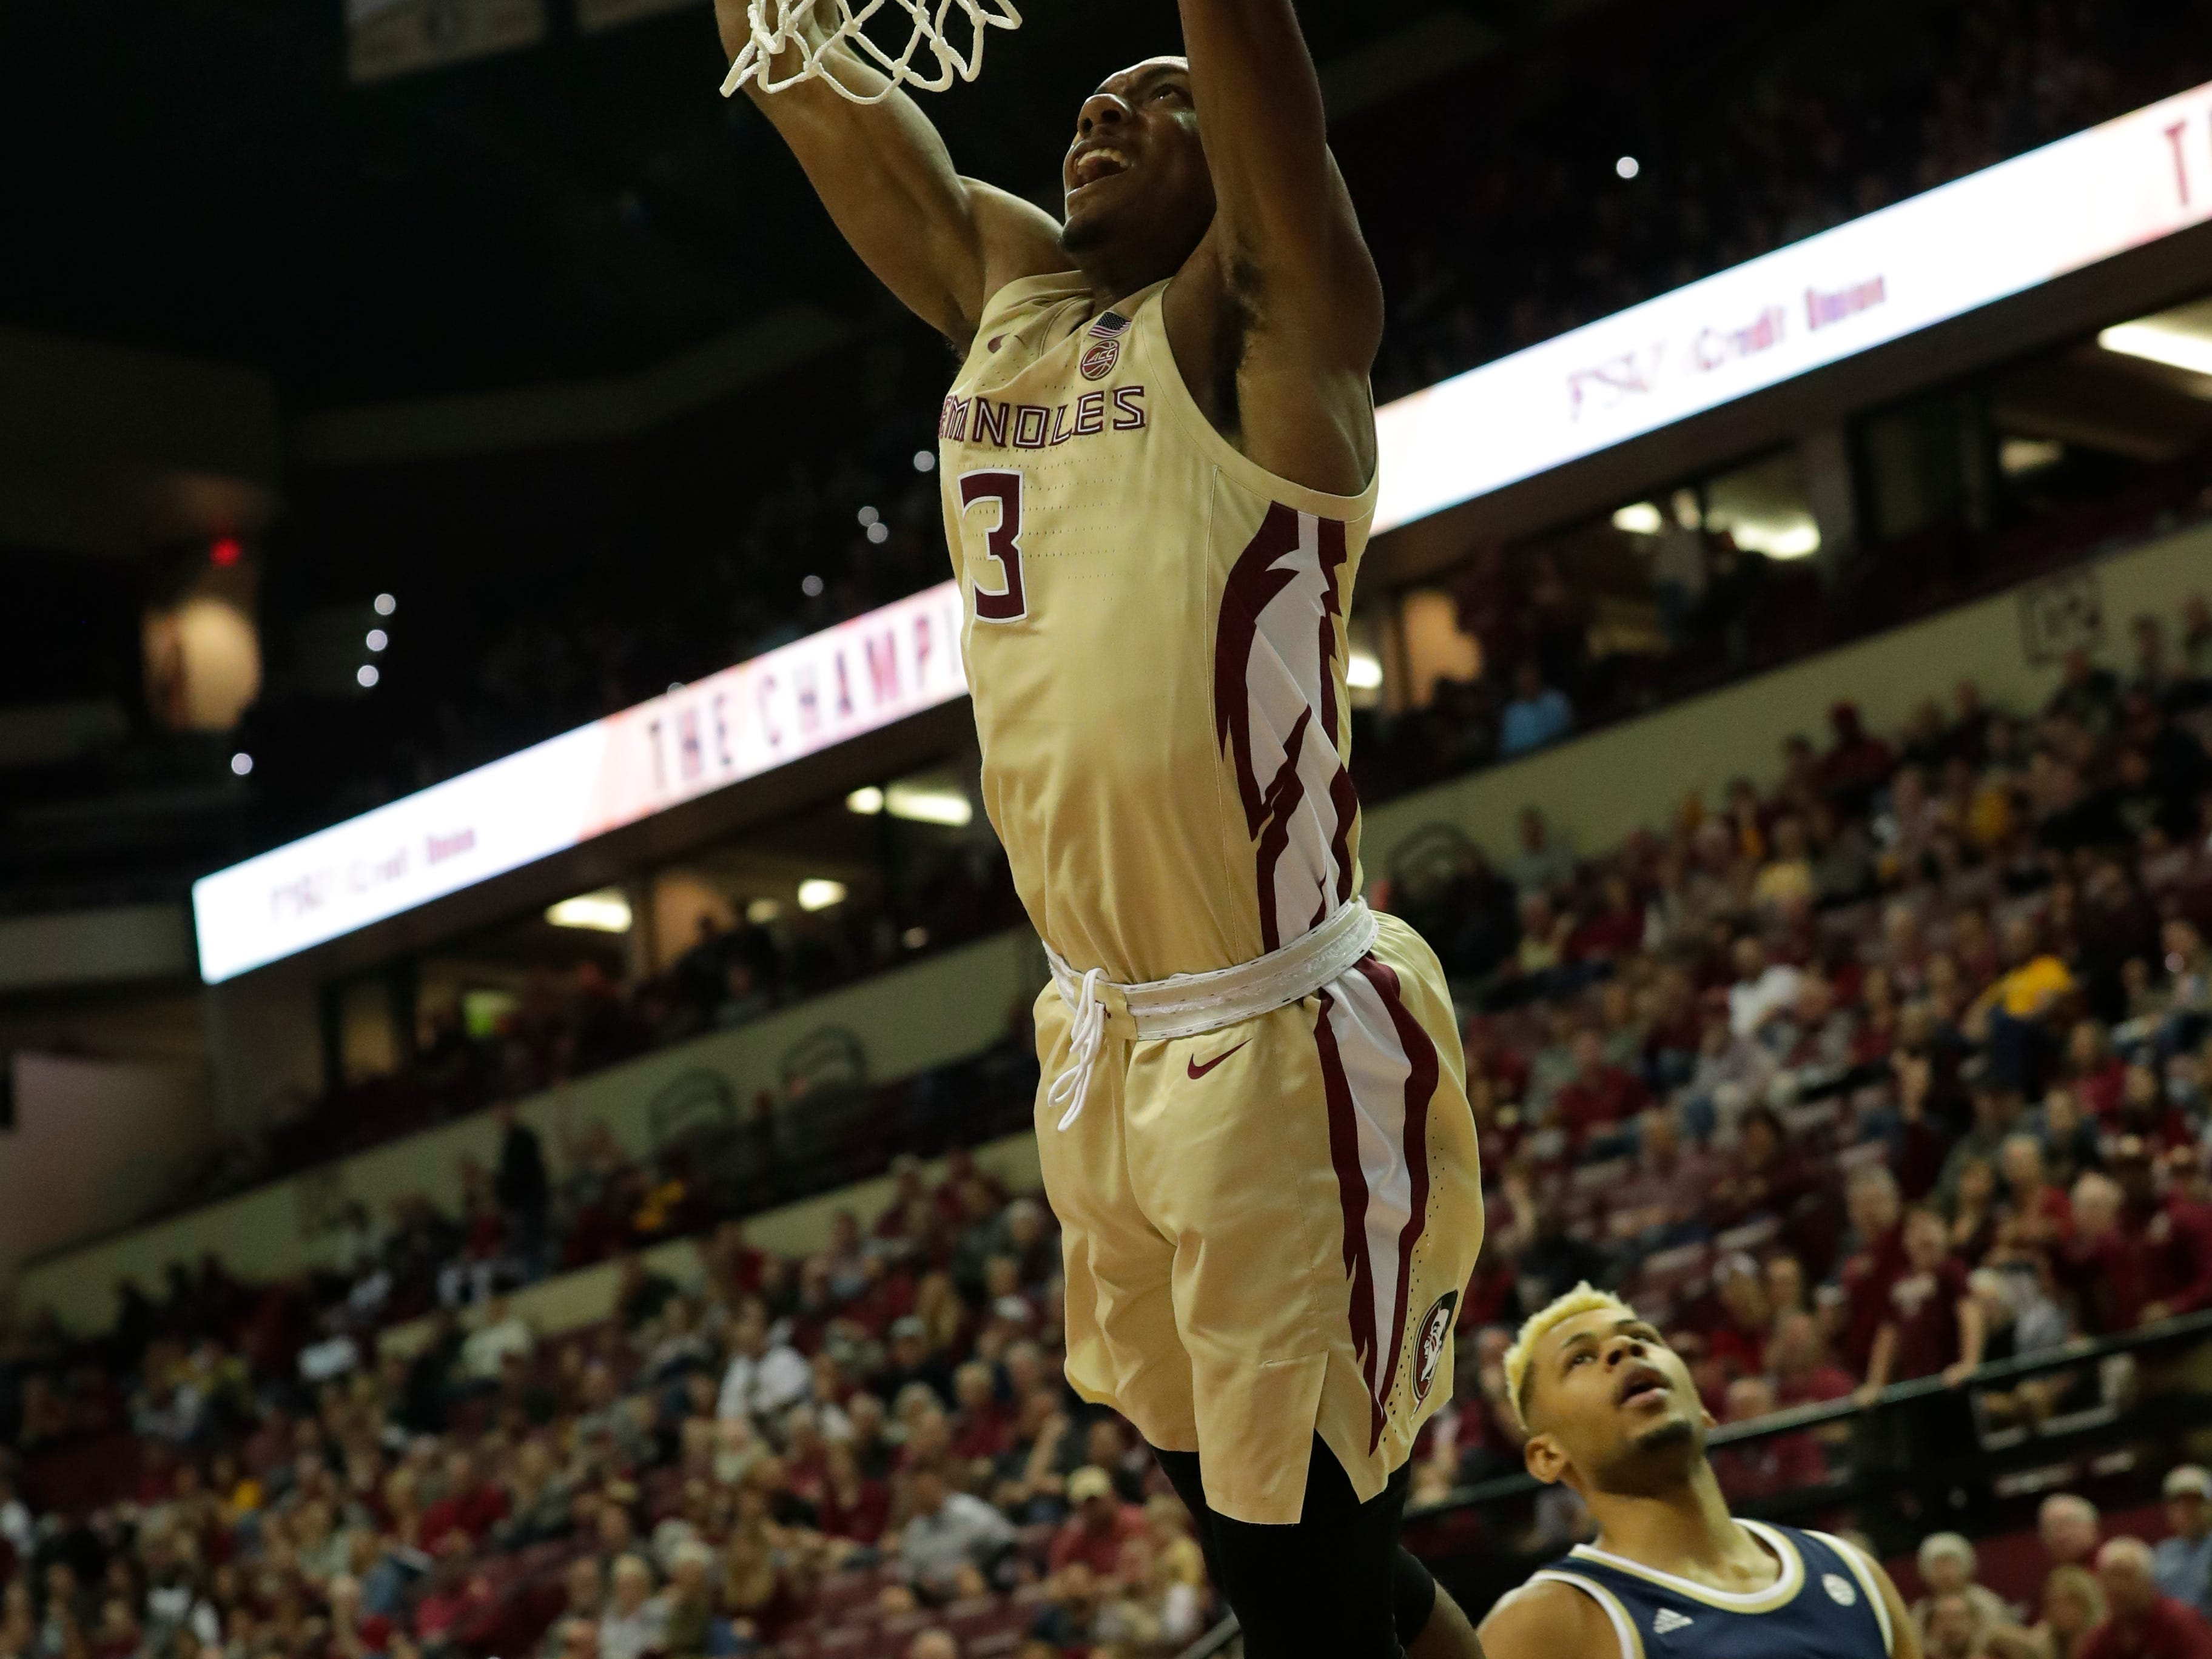 Florida State Seminoles guard Trent Forrest (3) dunks the ball on an open hoop. The Florida Sate Seminoles face off against the Georgia Tech Yellow Jackets at the Tucker Civic Center, Saturday, Feb. 2, 2019.